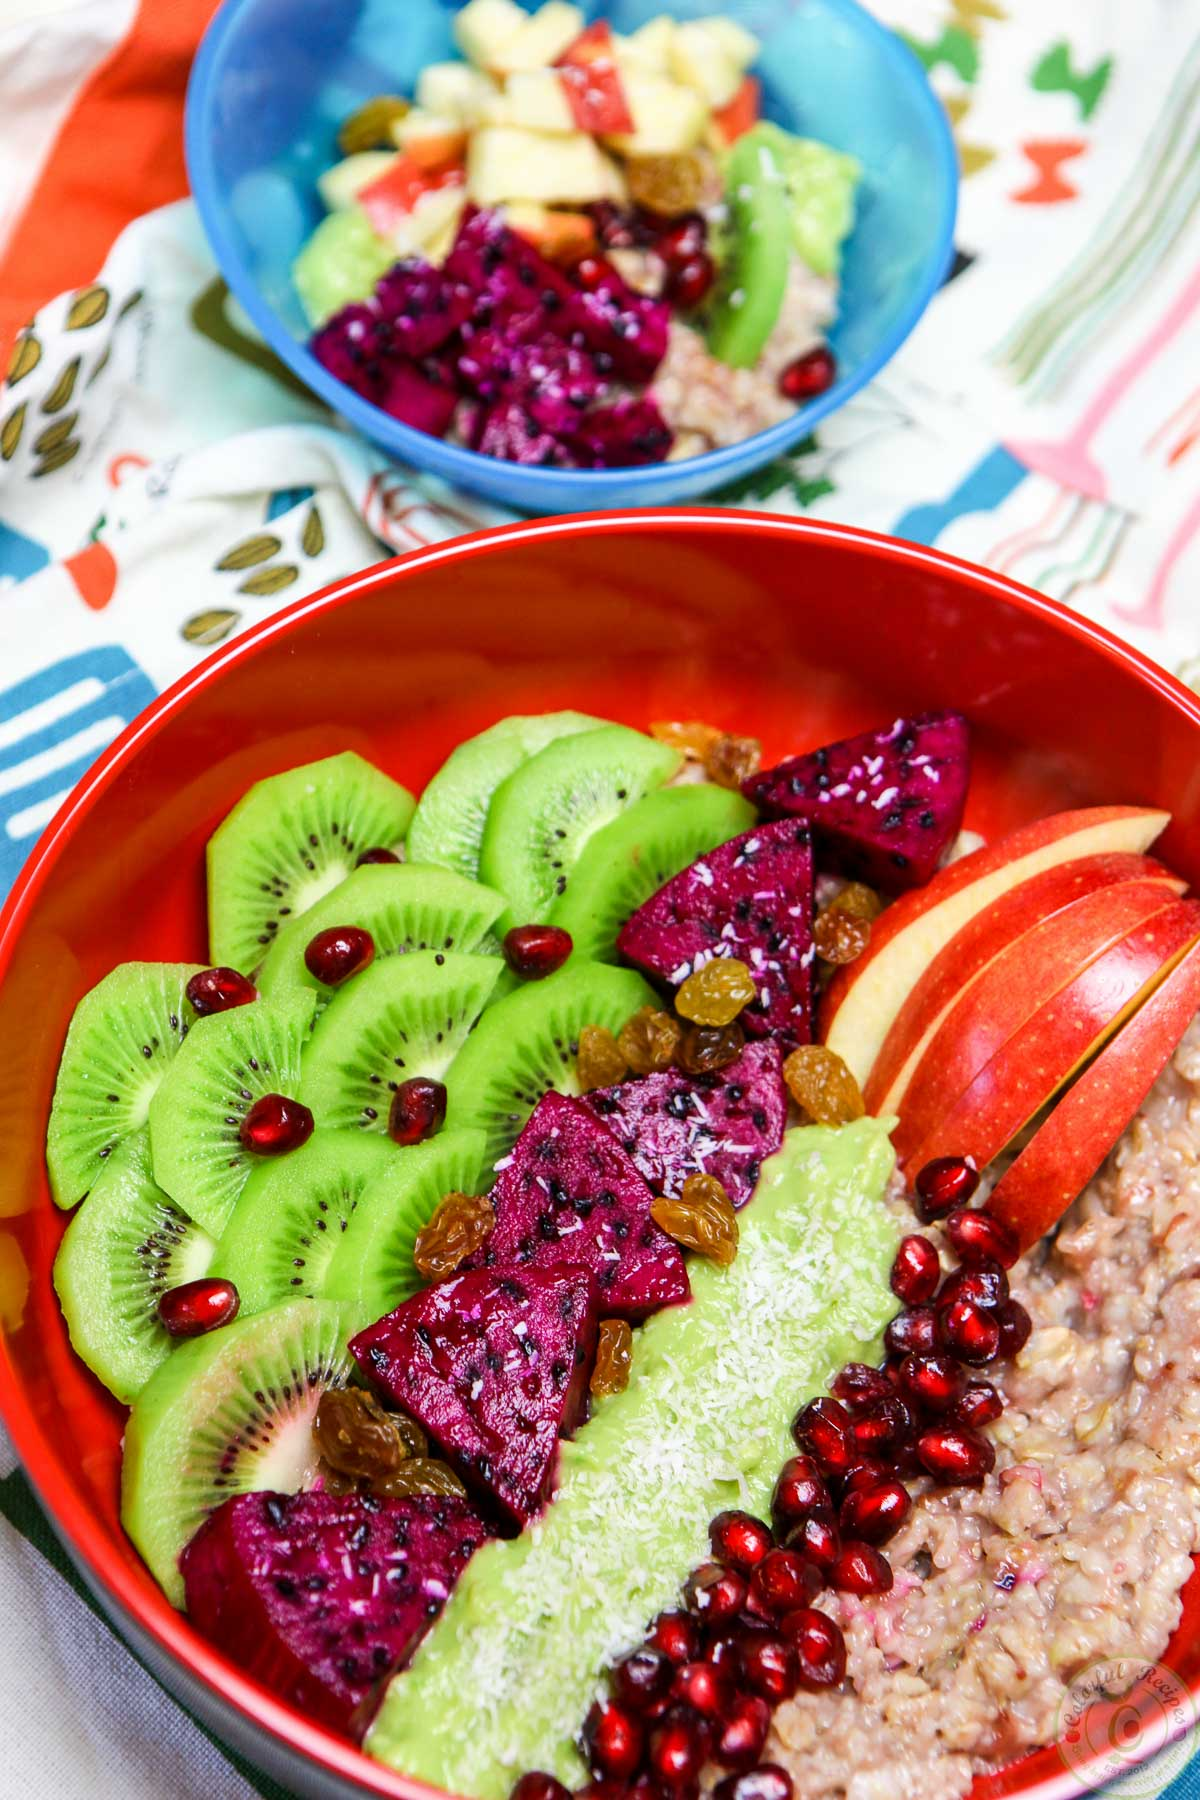 Unusual Fruit Bowls Exotic Fruit Oatmeal Bowl Colorful Recipes